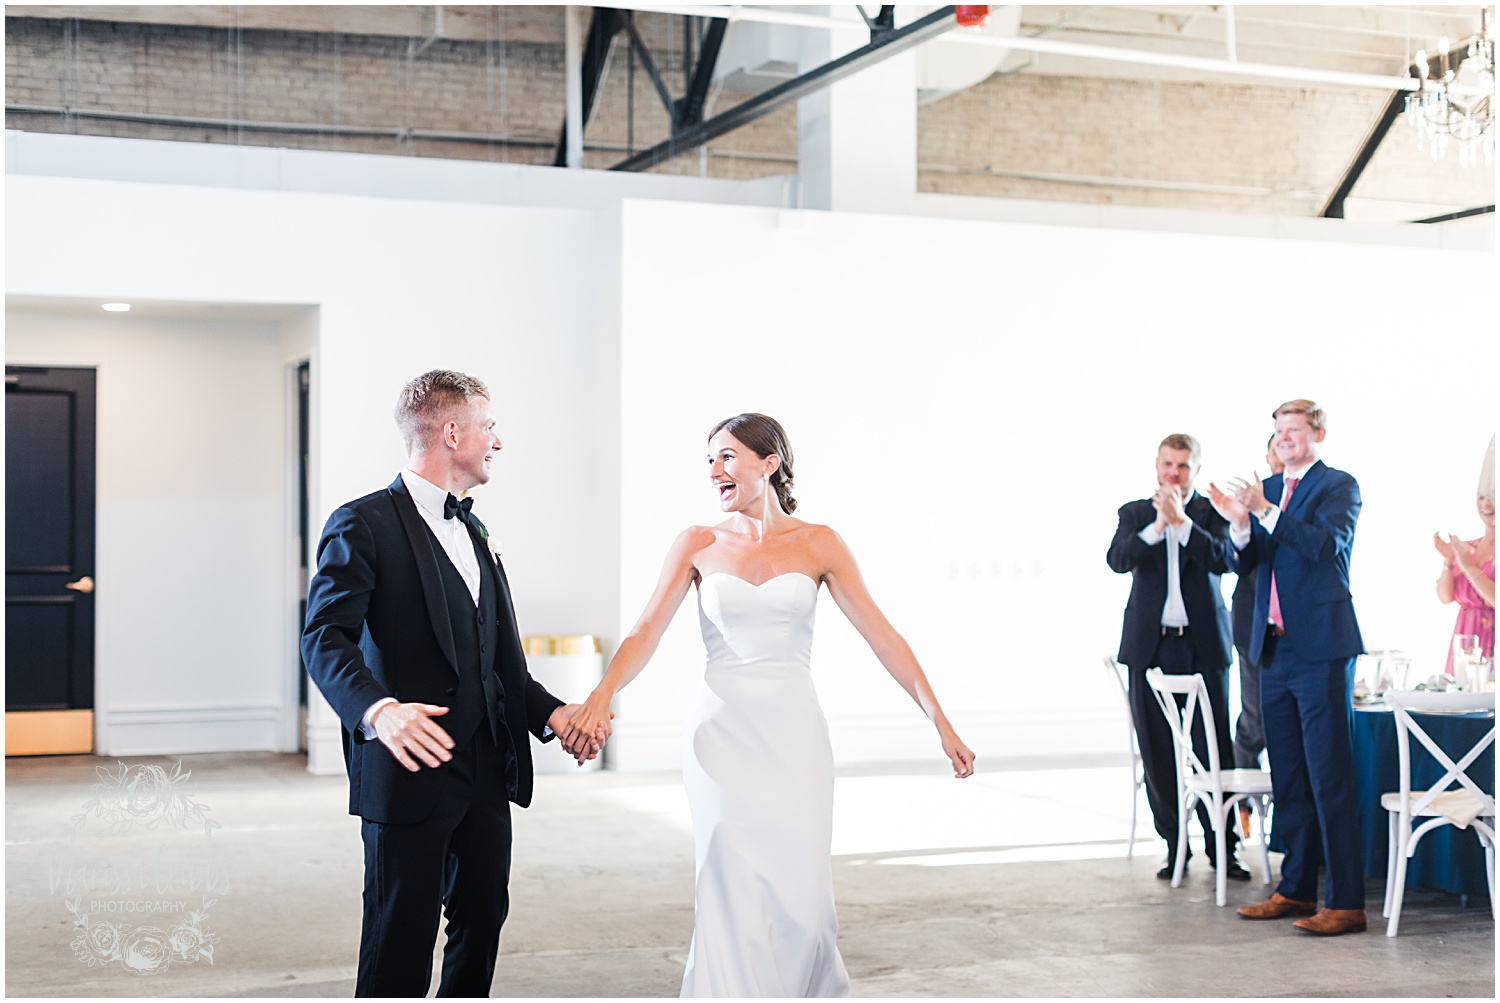 JOANNE & GEORGE MARRIED BLOG | MARISSA CRIBBS PHOTOGRAPHY | THE ABBOTT | KANSAS CITY WEDDING PHOTOS_9145.jpg